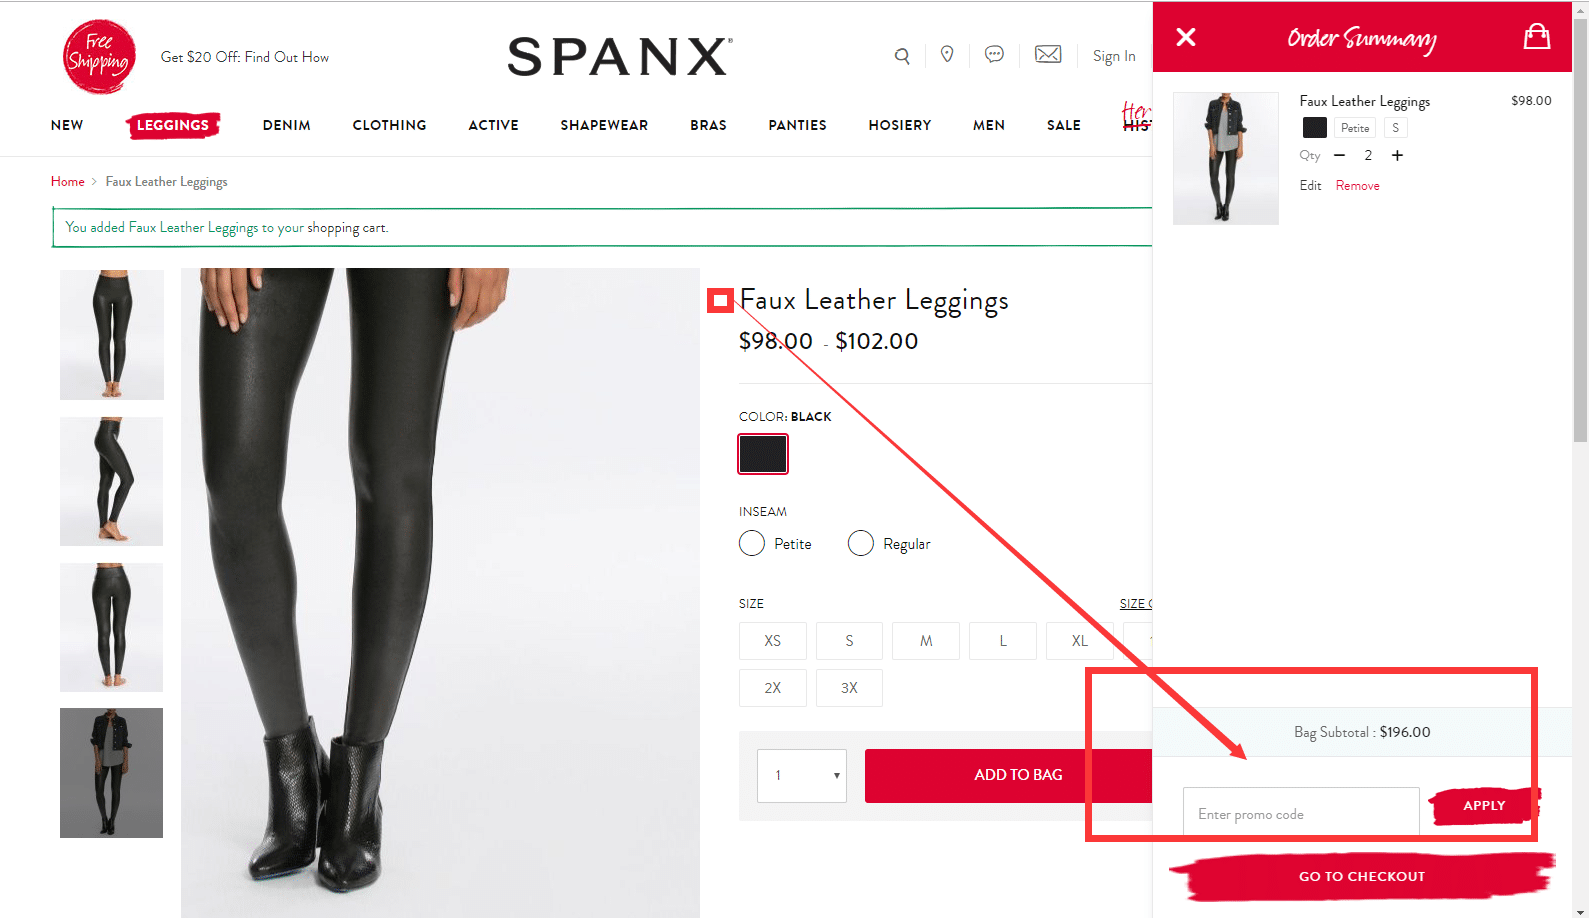 how to use spanx promo code